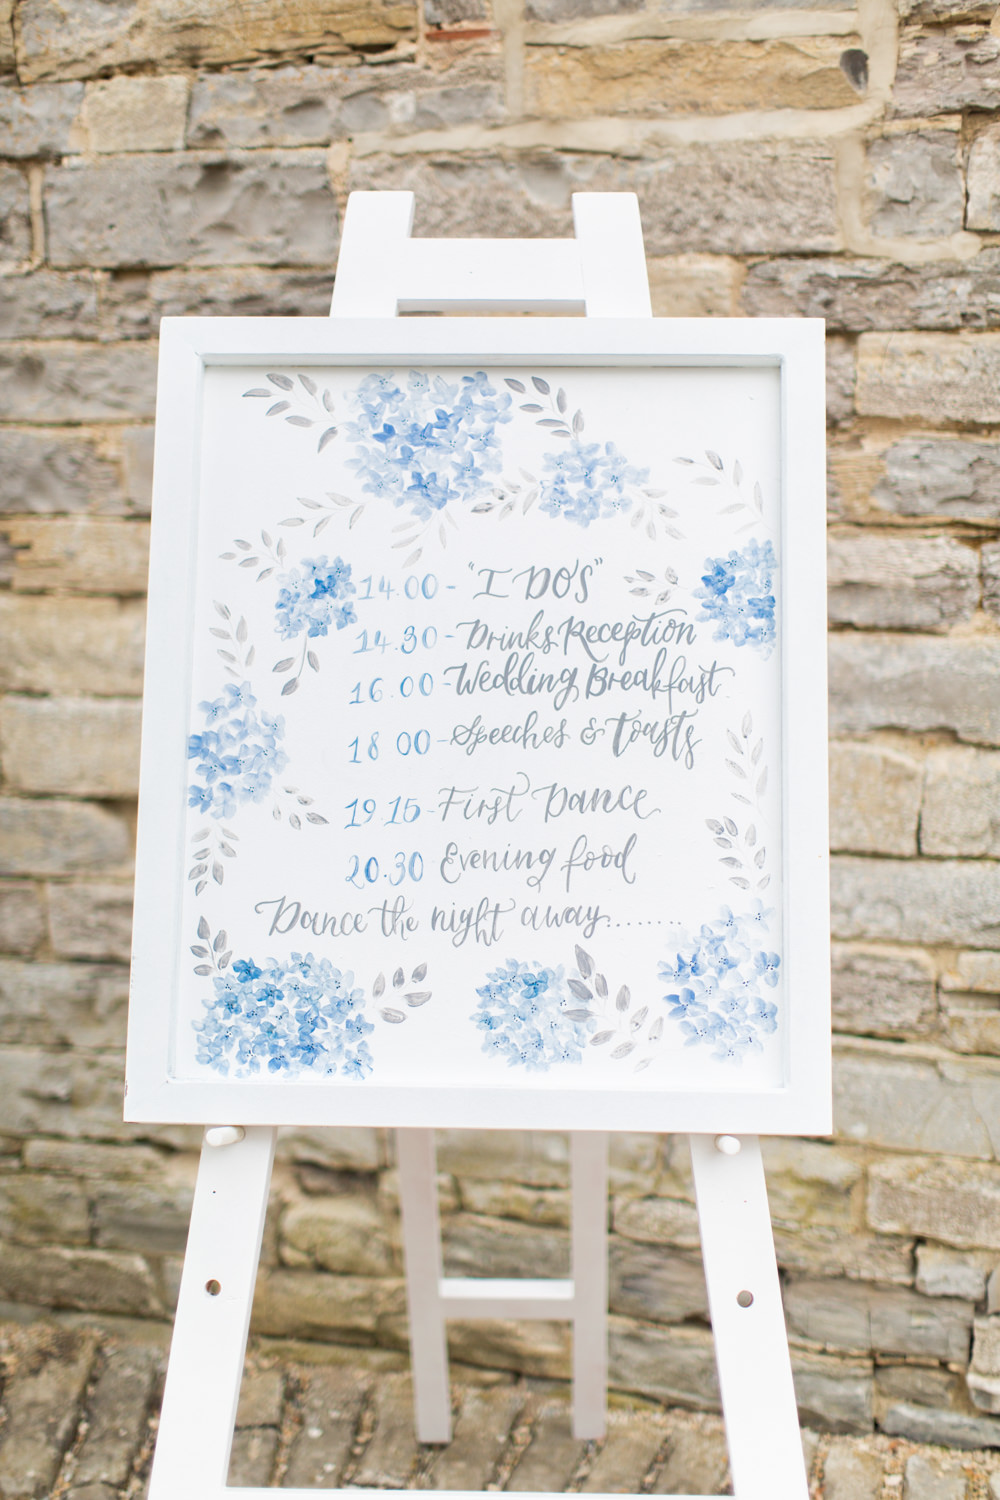 Order of the Day Sign Signs Signage Blue Floral Almonry Barn Wedding Kerry Bartlett Photography